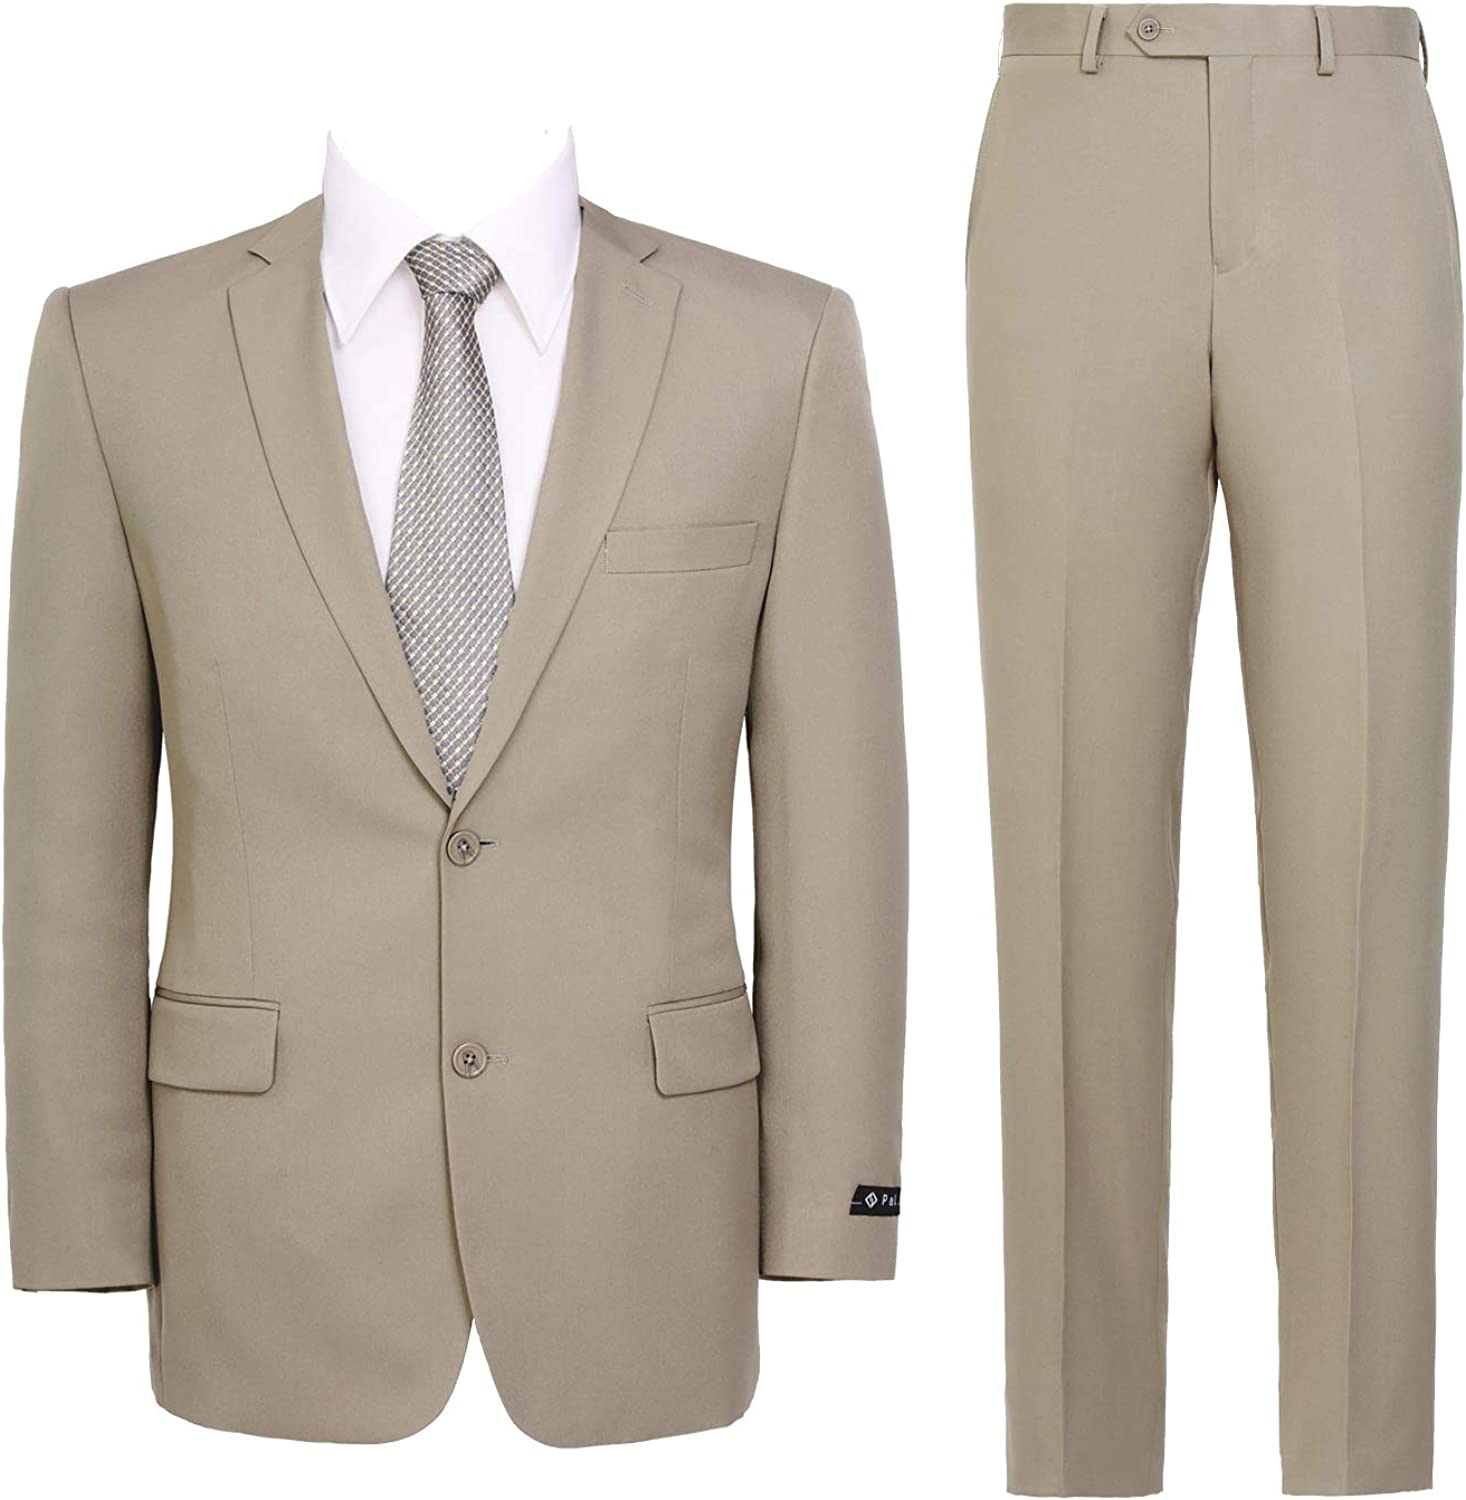 New products, world's highest quality popular! Men's Suit 2-Piece Classic Fit Solid Max 49% OFF Single But 2 Breasted Color